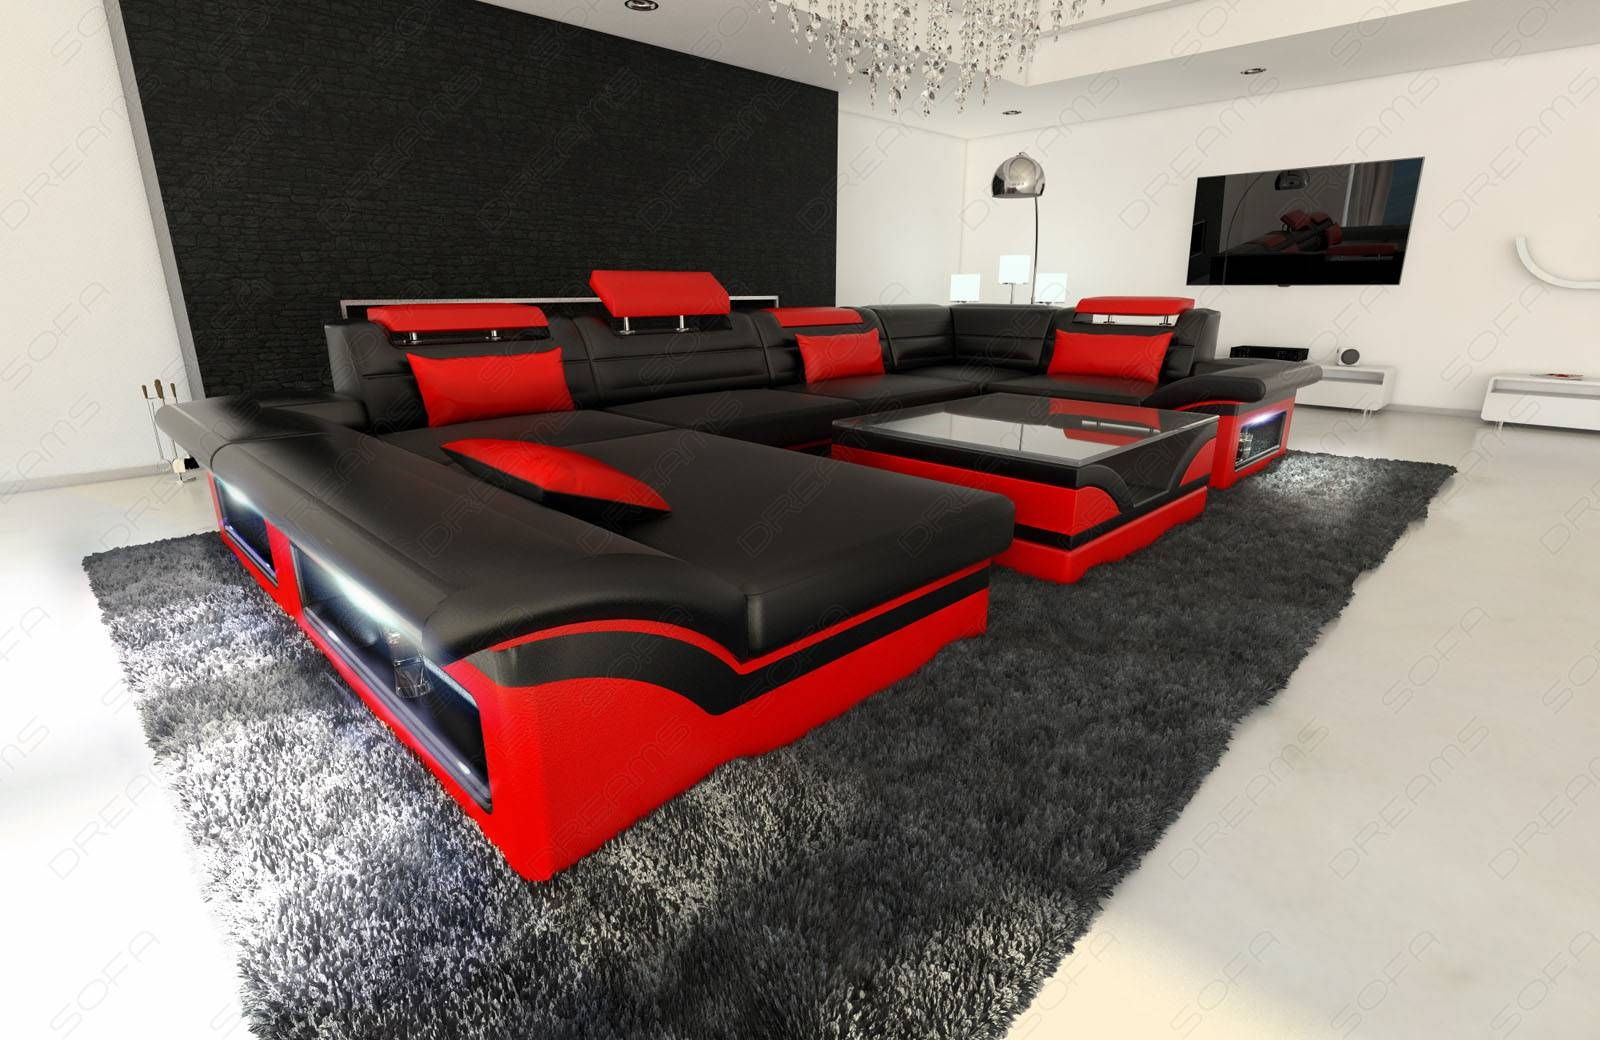 Big Leather Sofa Enzo With Led Lights Black Red | Ebay Pertaining To Sofa Red And Black (View 7 of 25)